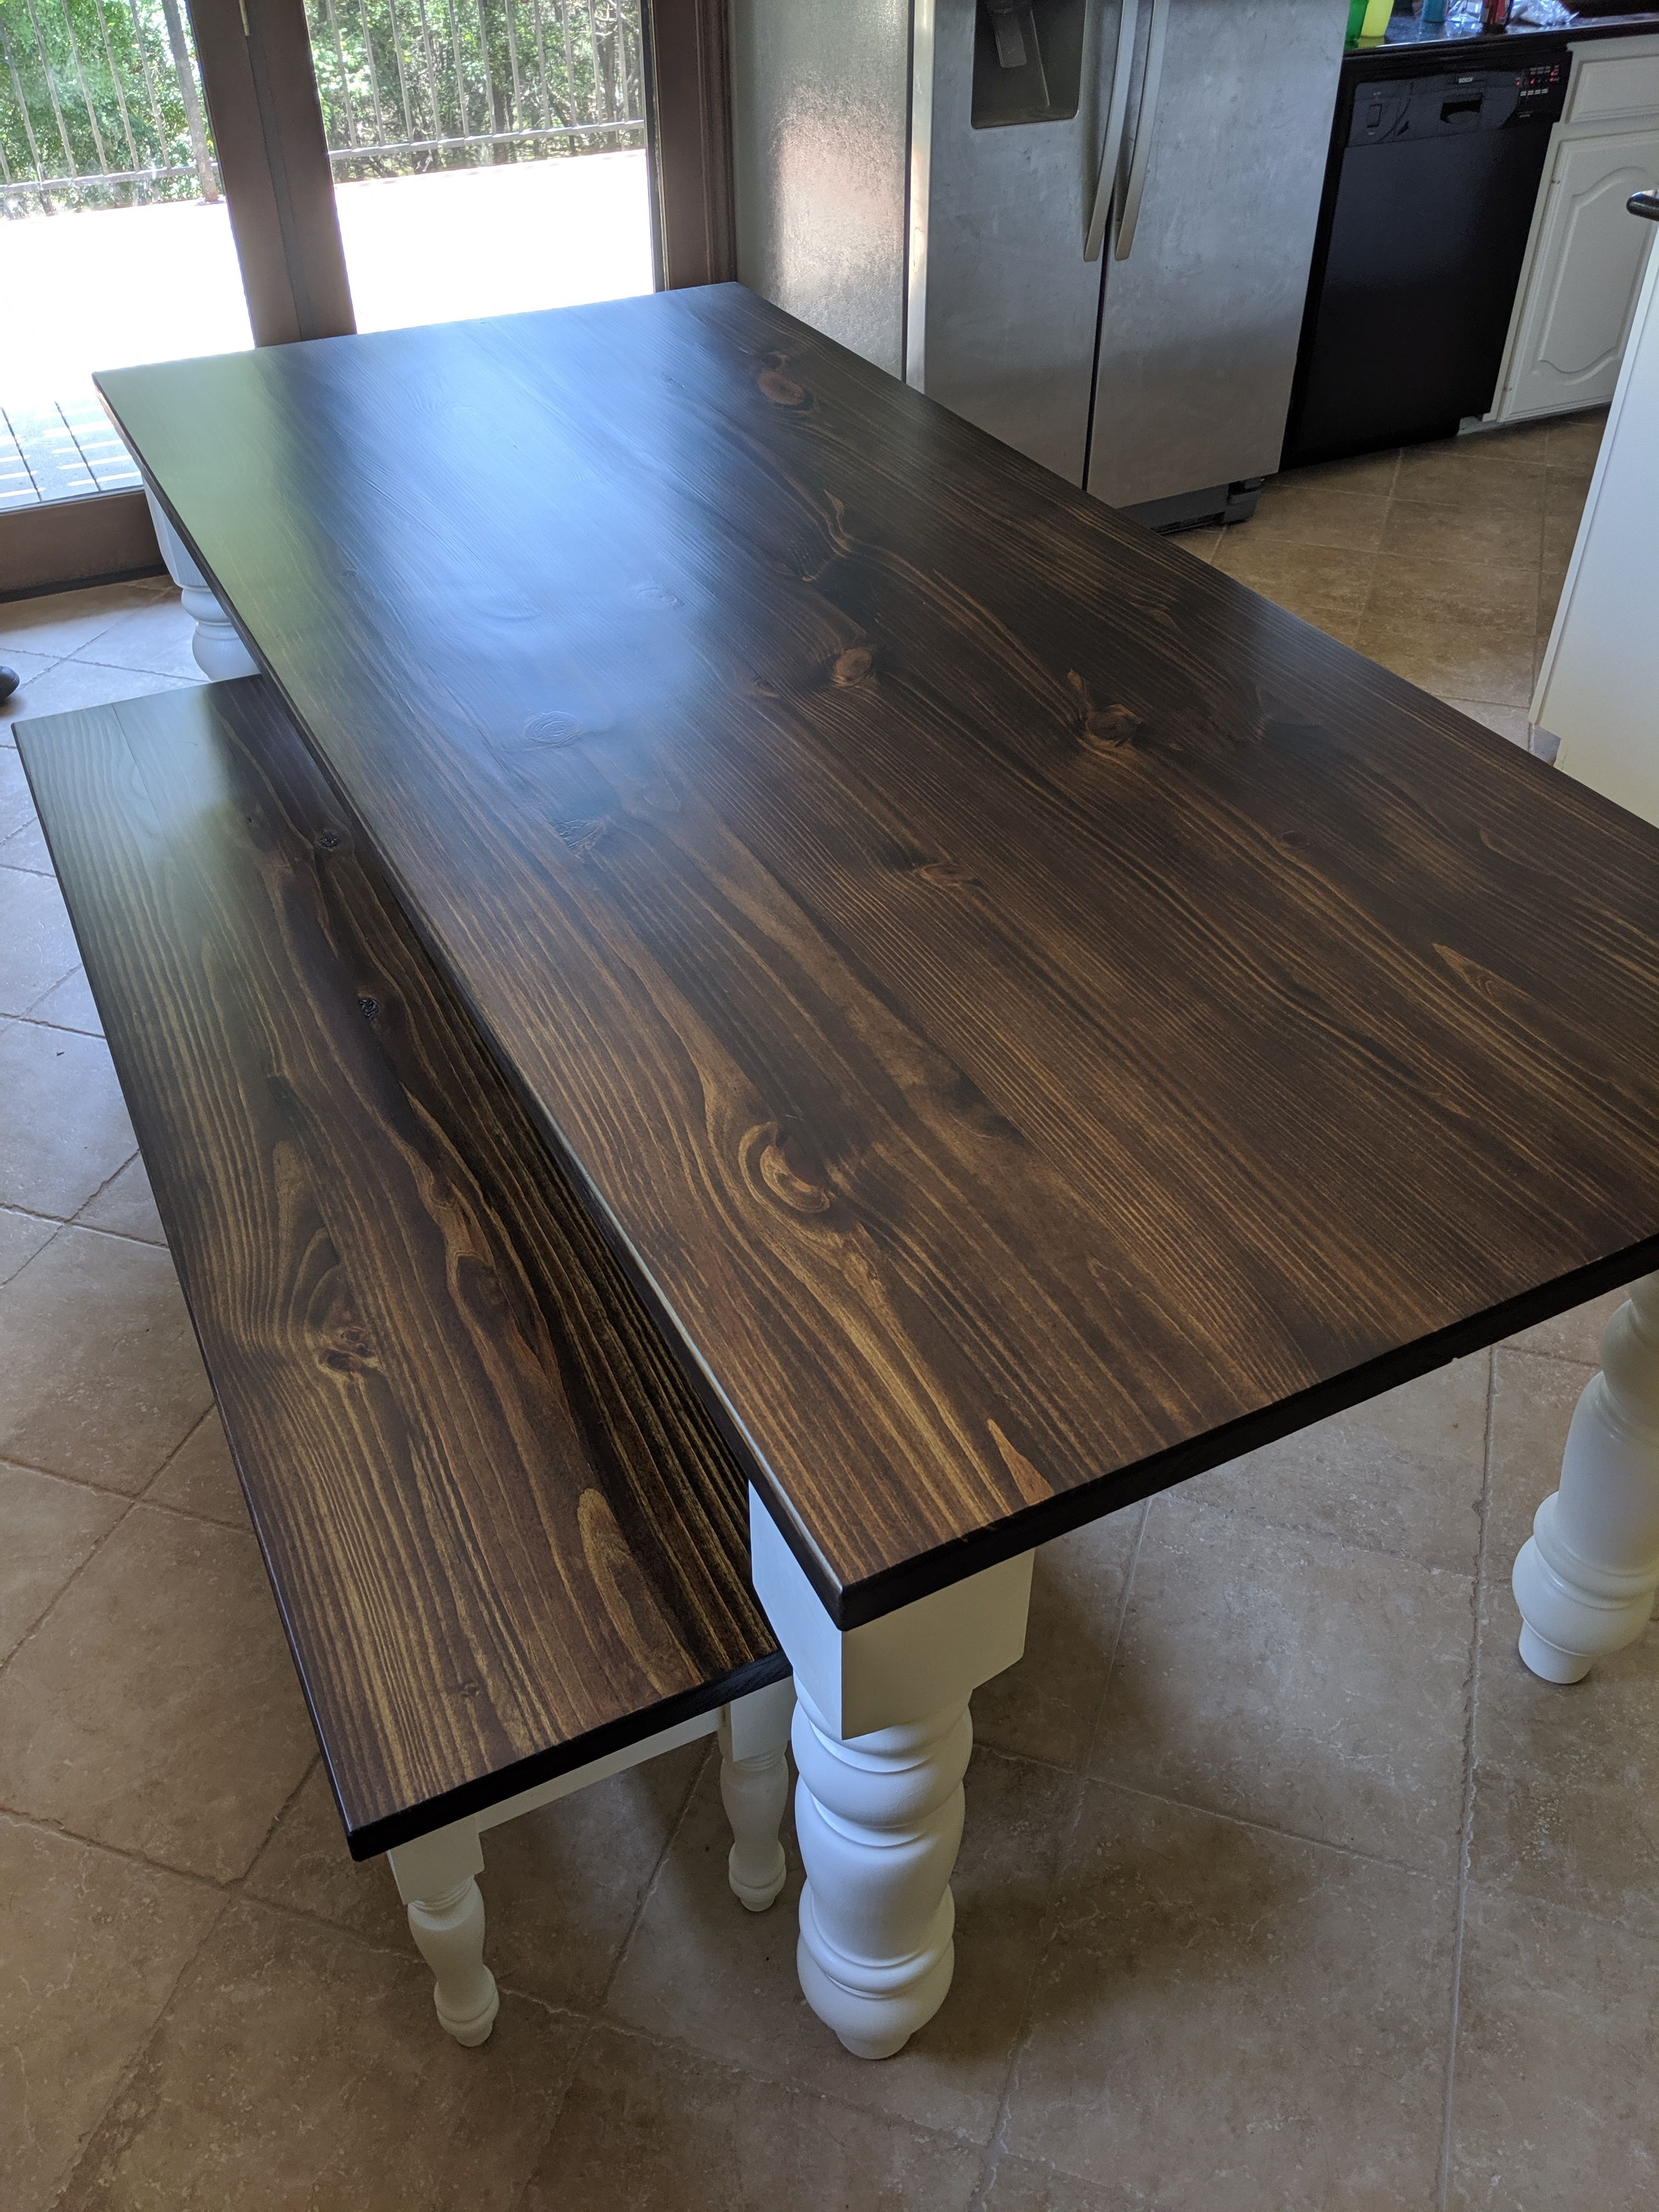 Painted Table Base creates Contrast with Solid Wood Top